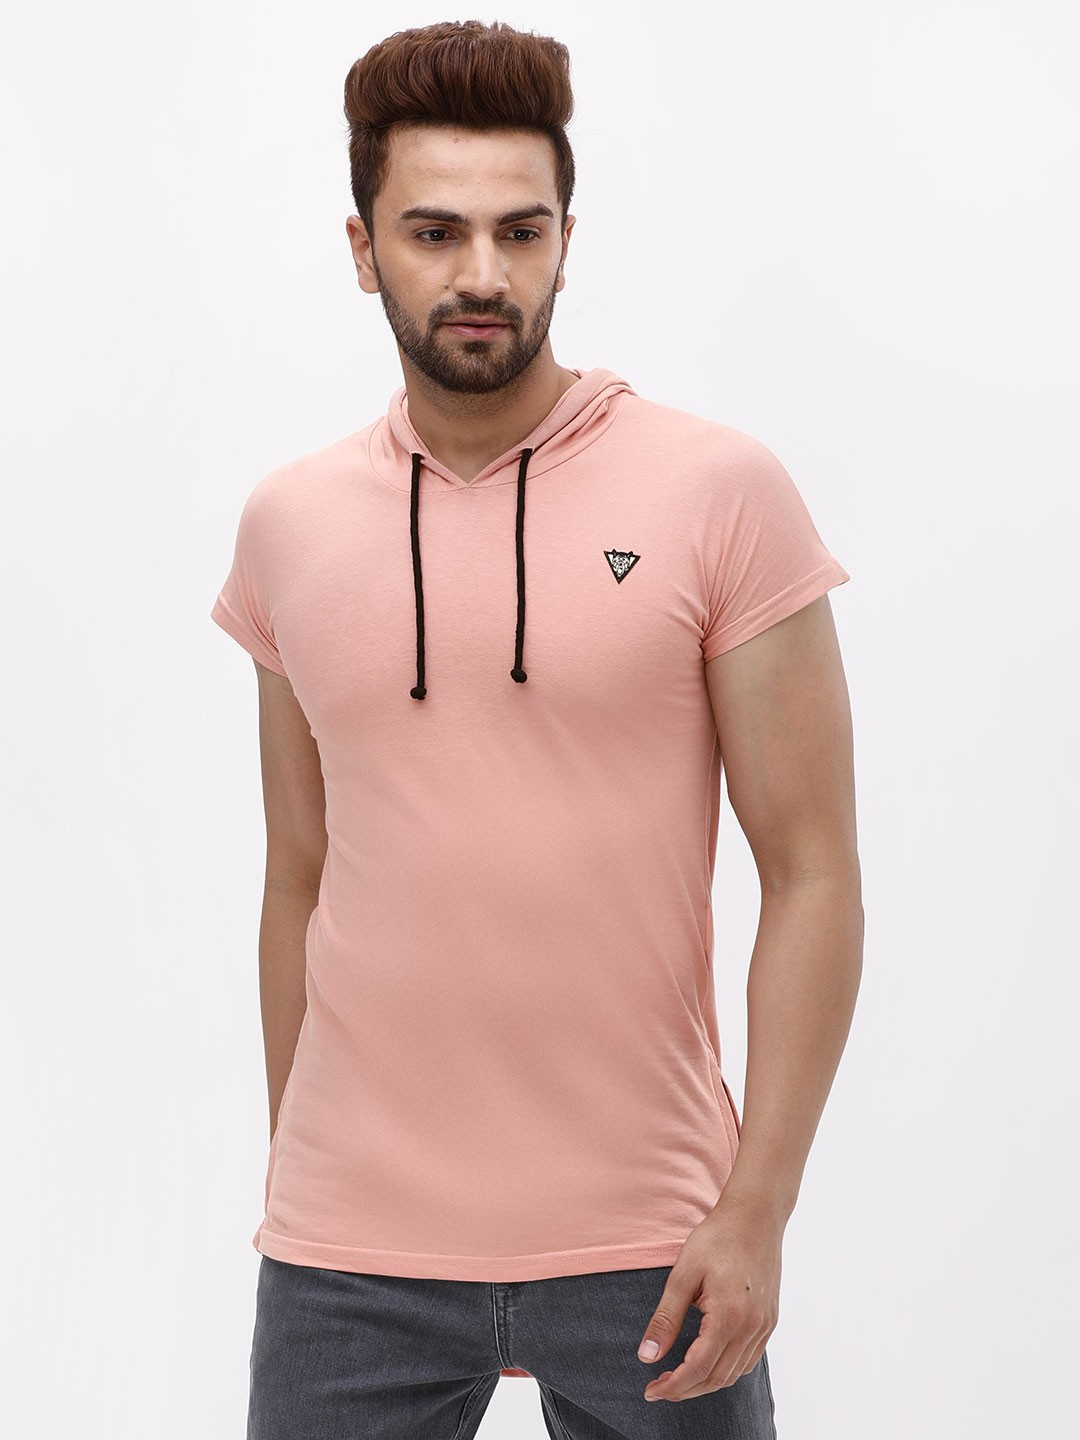 Styx & Stones Pink Slim Fit Hooded T-Shirt 1